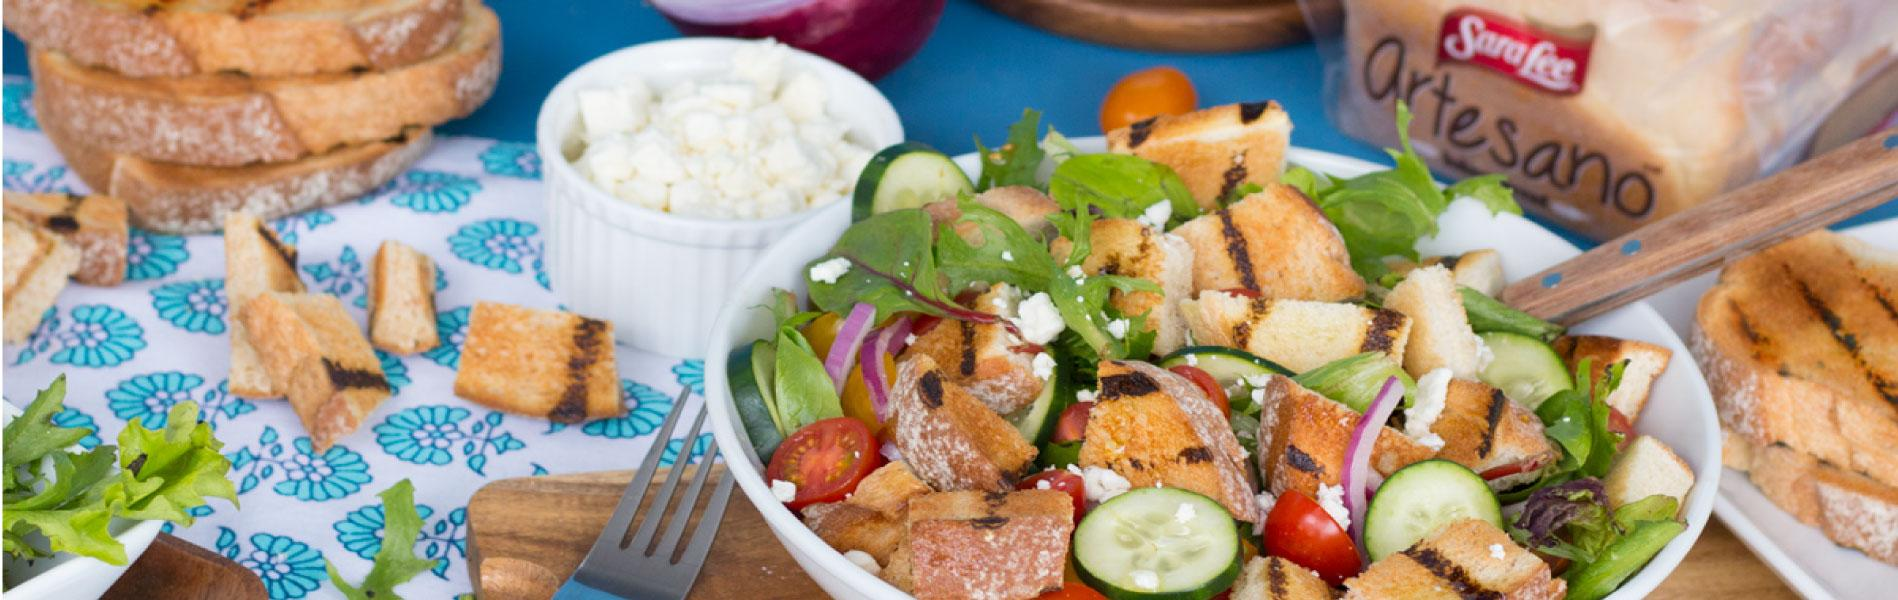 Greek salad with cubed bread